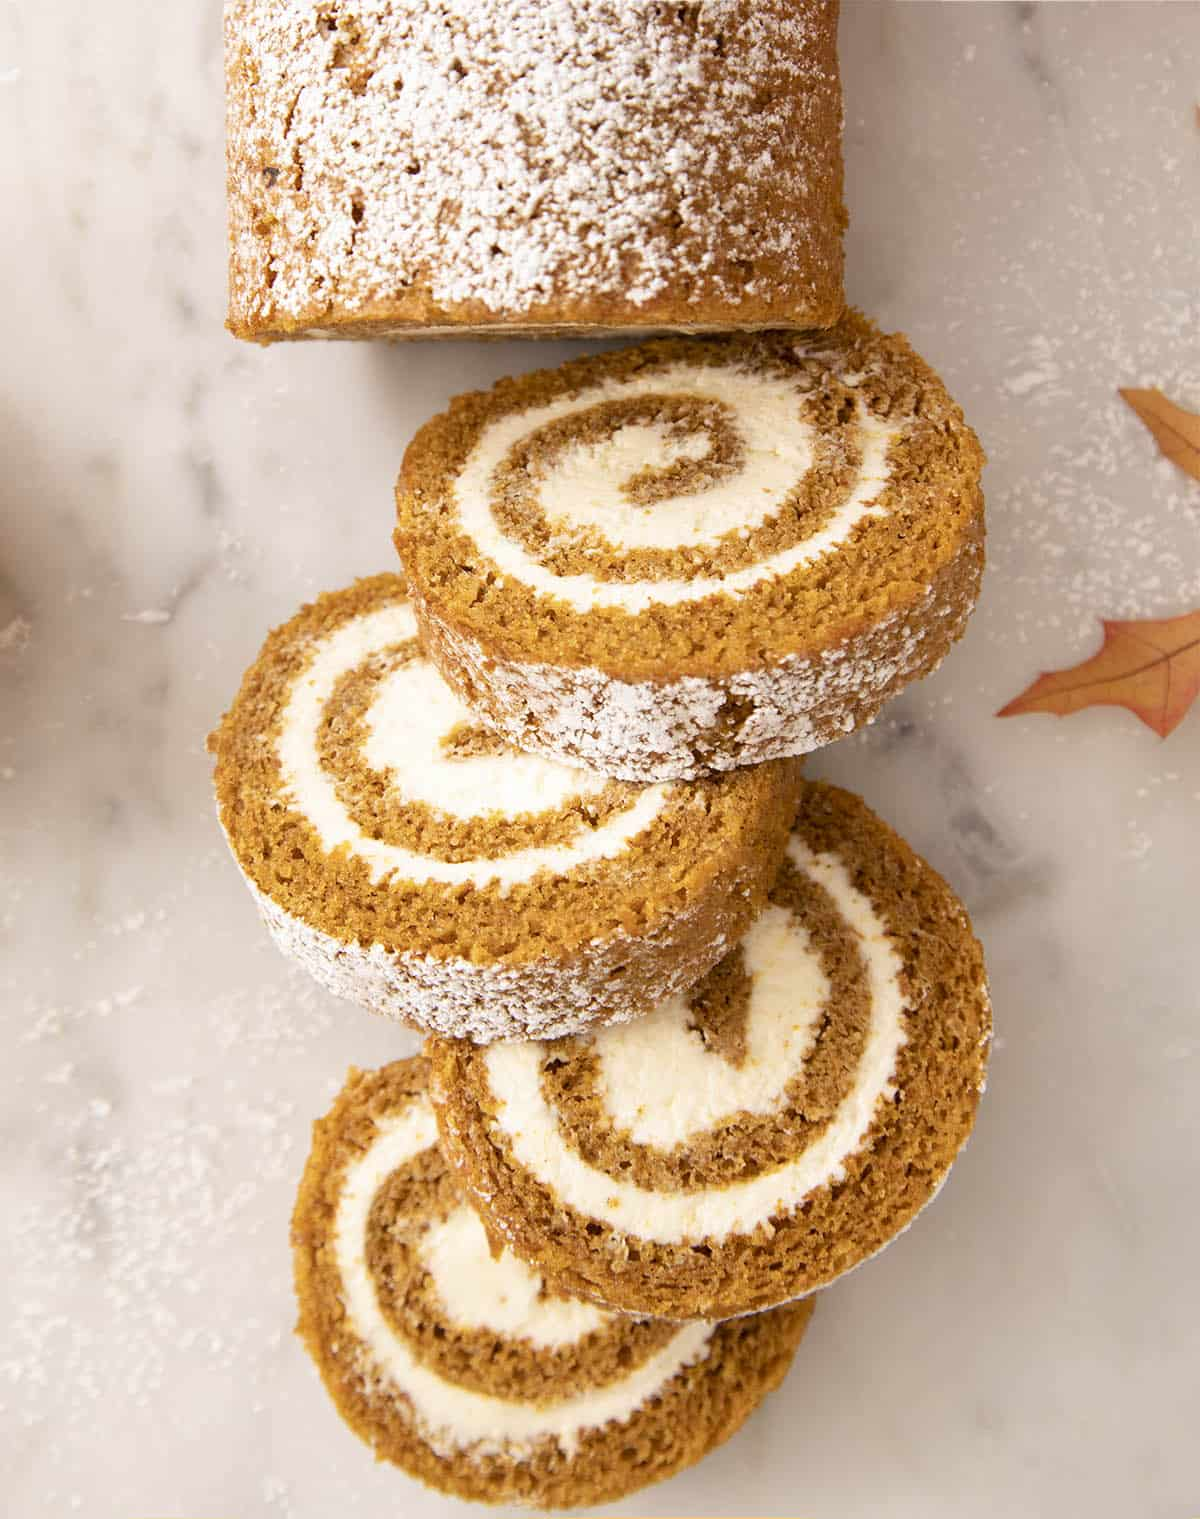 Pieces of pumpkin roll cake on a marble counter.